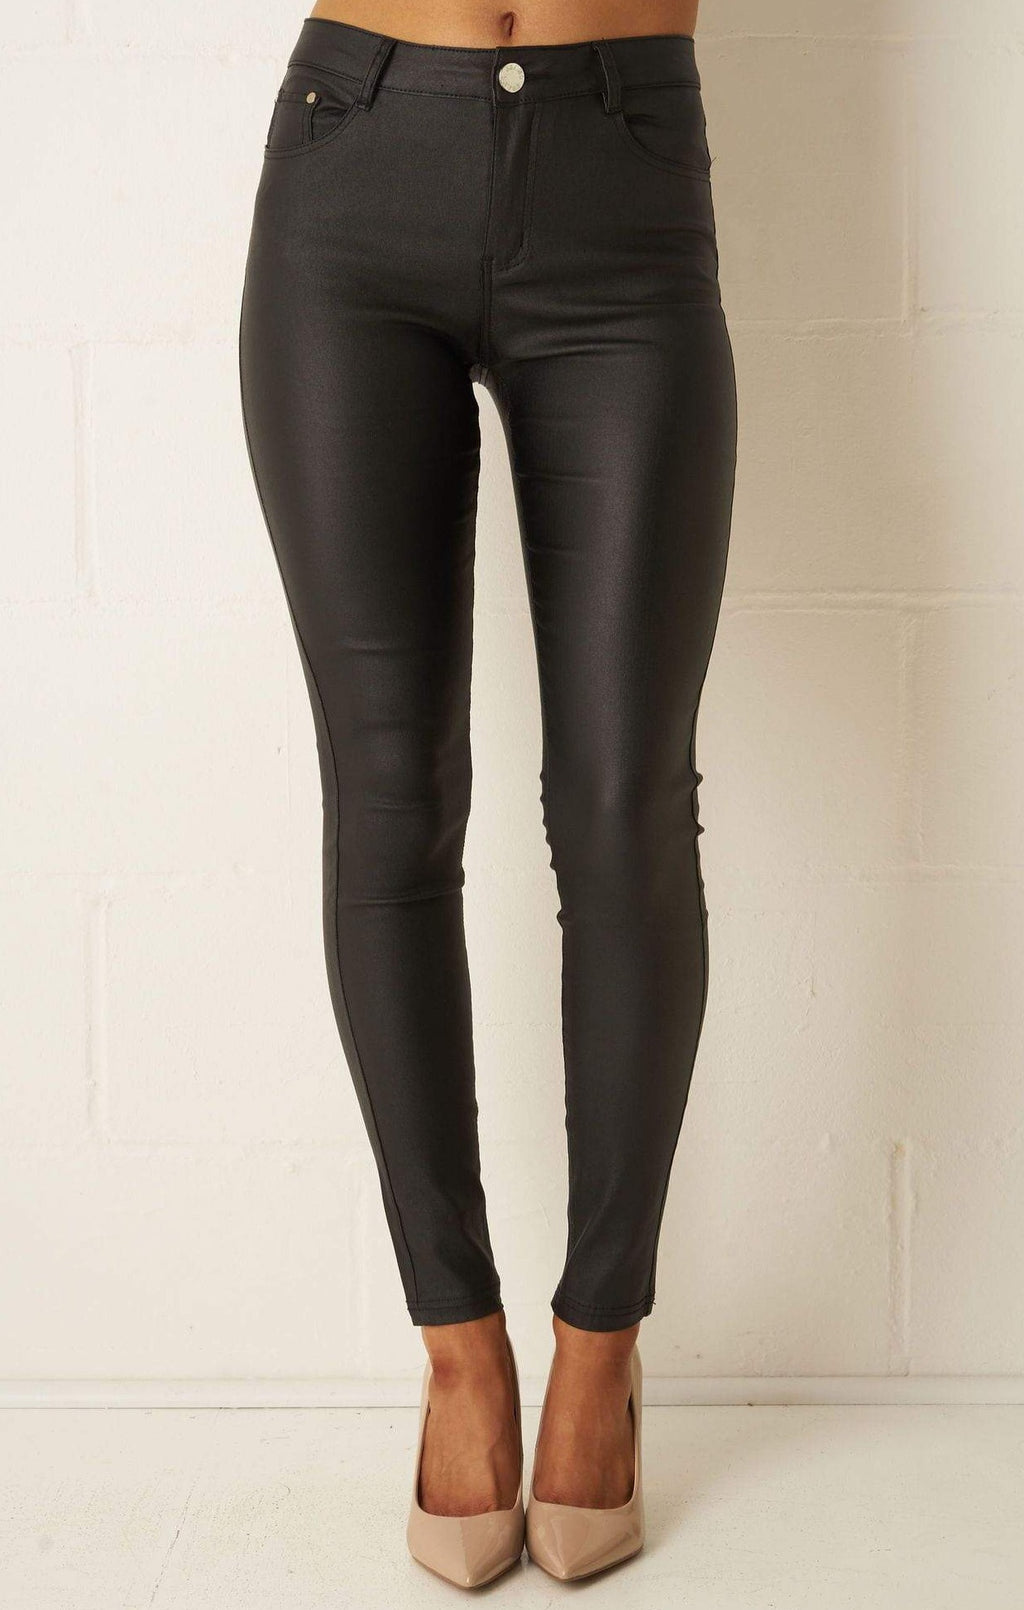 Morgan Fit Black Wax Coated Jeans - love frontrow